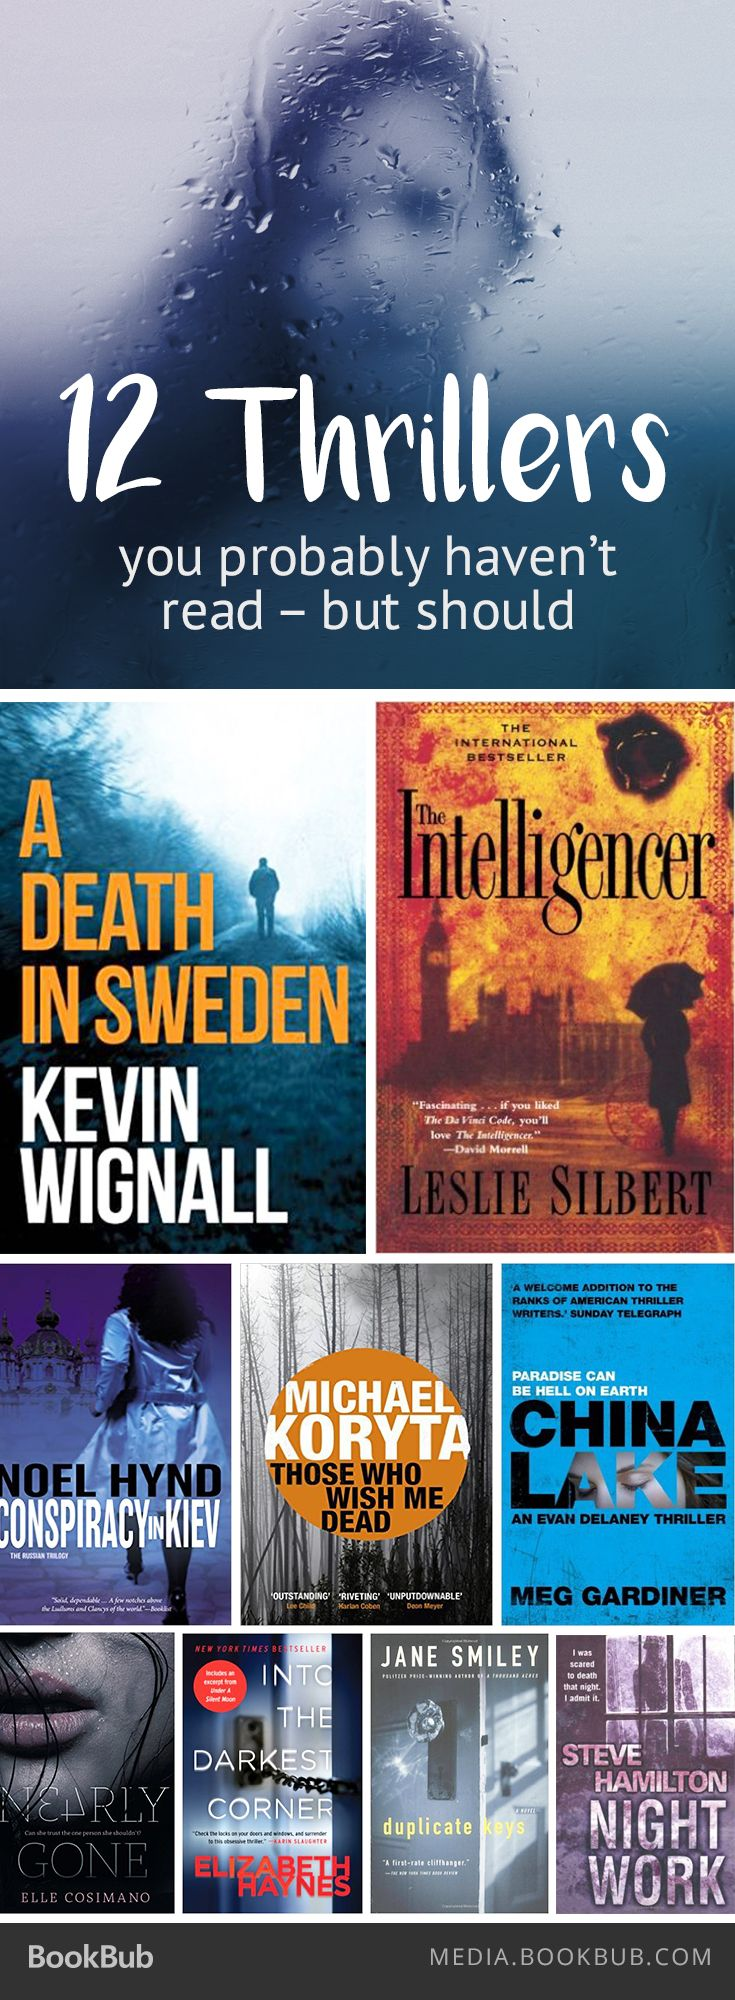 If you love books by James Patterson, Paula Hawkins, and Harlan Coben, check out these 12 thrillers you probably haven't read, but should.